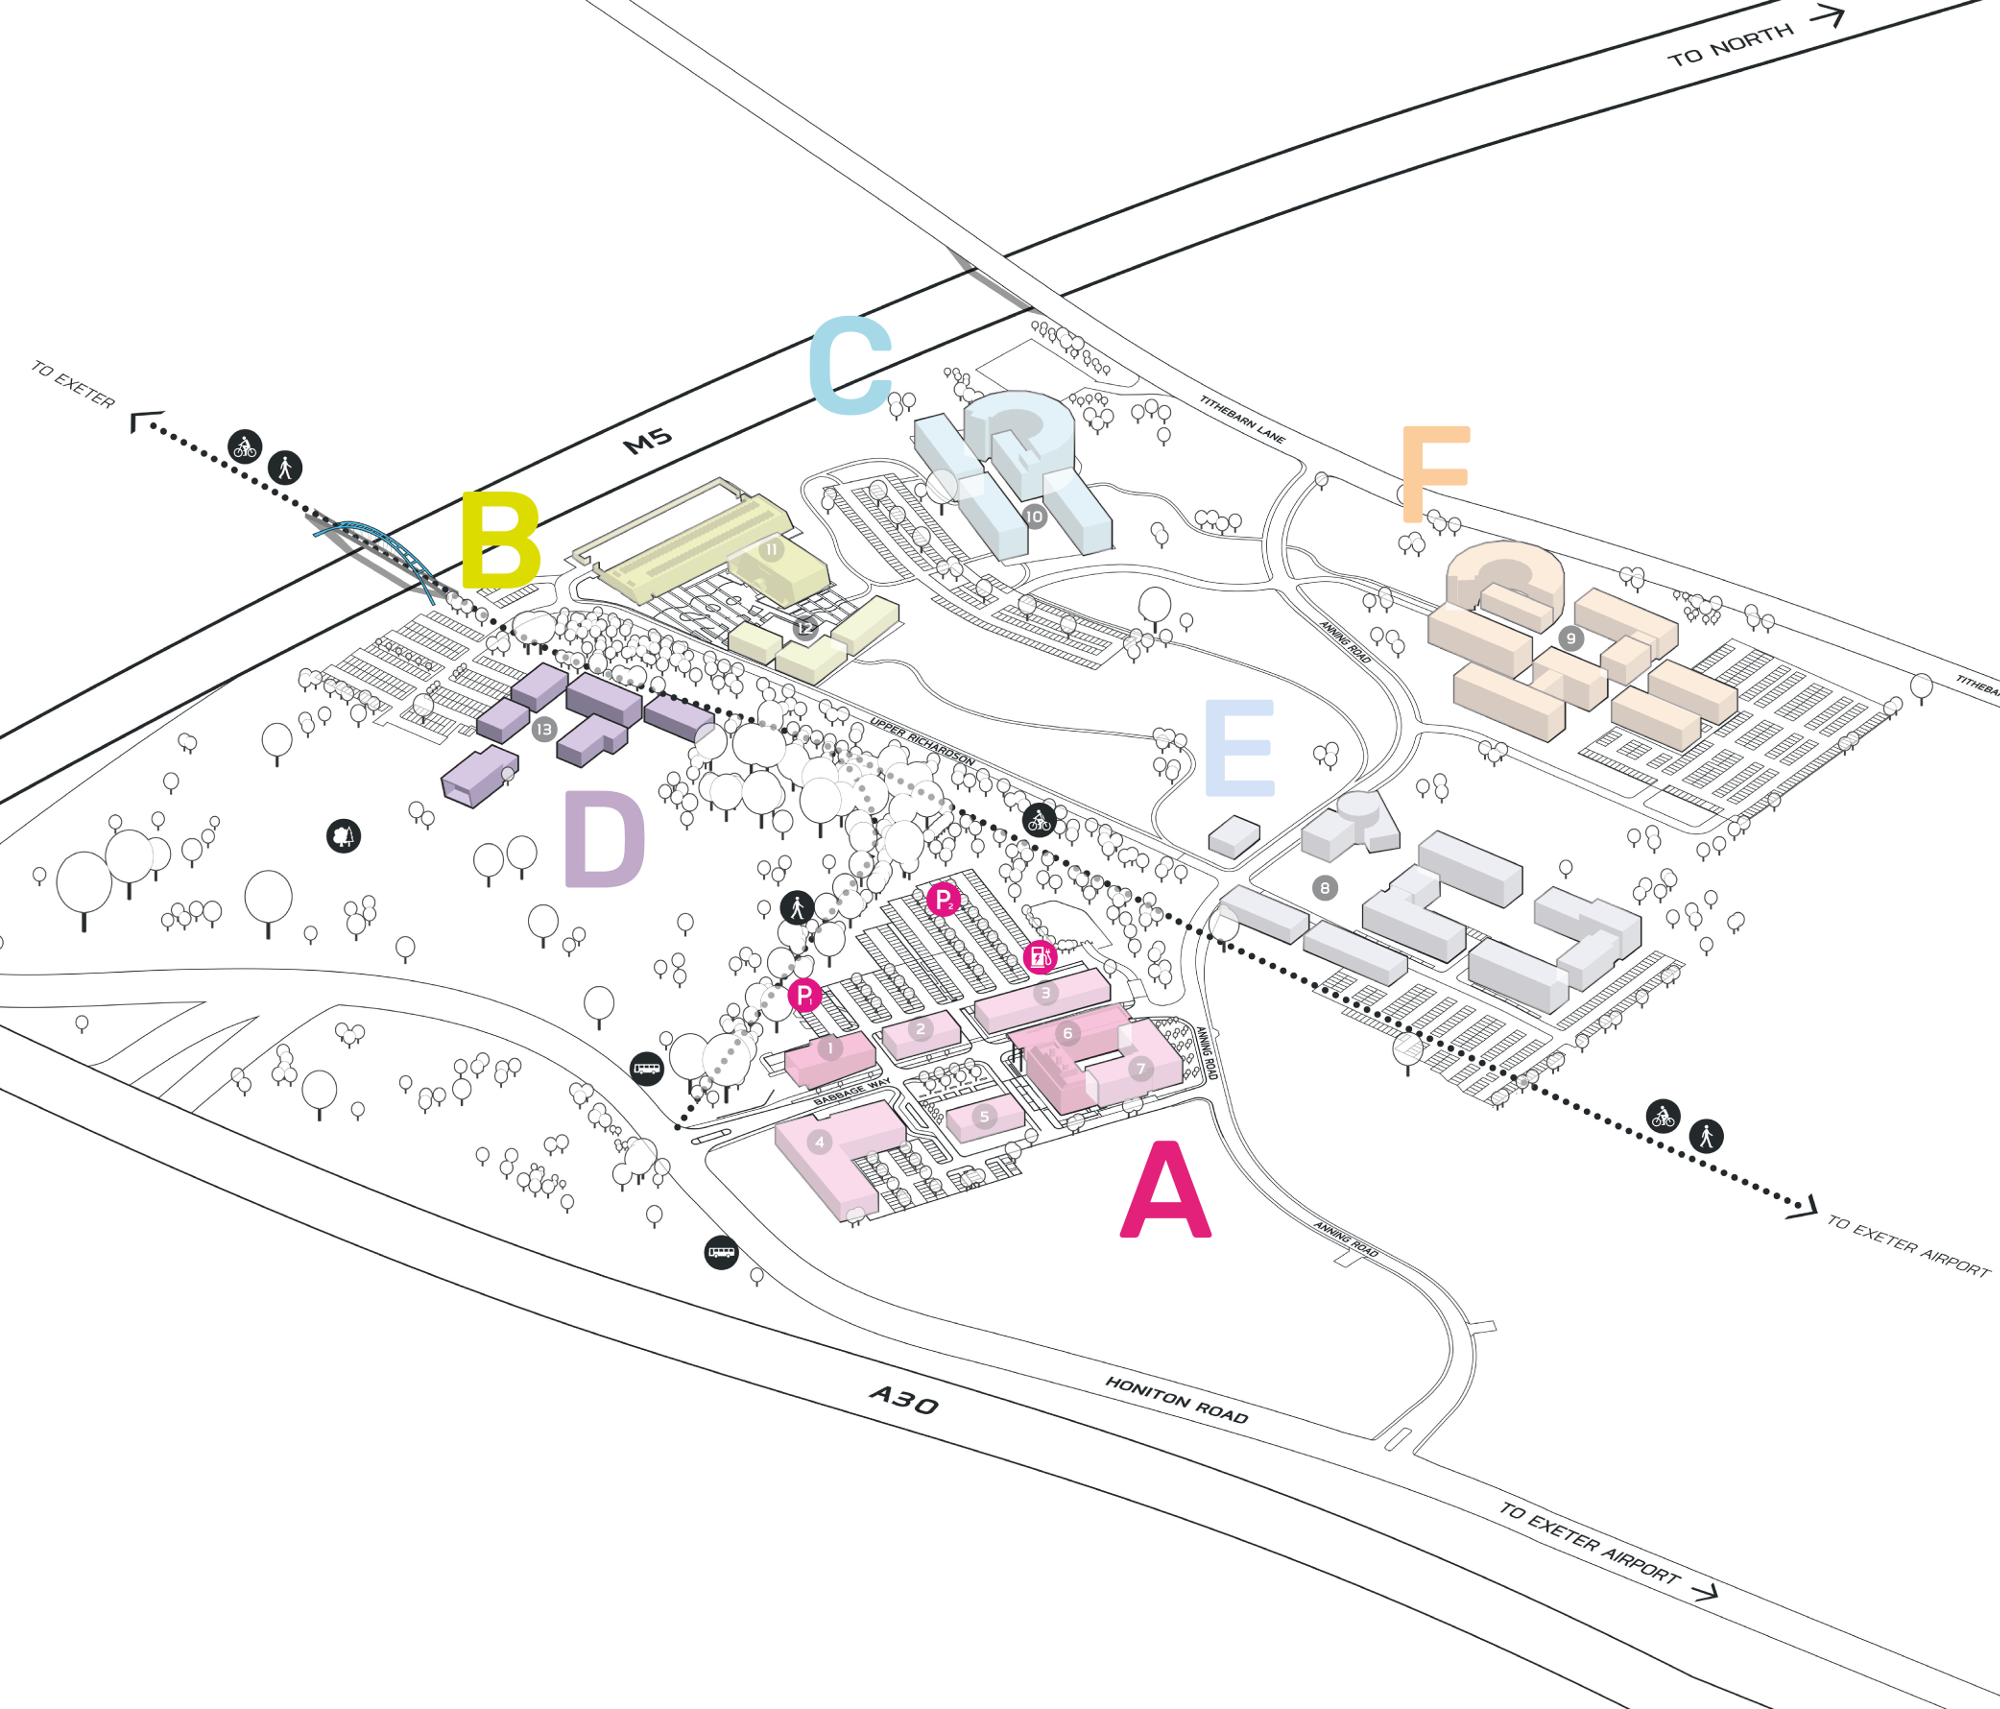 Park Plan highlighting cluster D